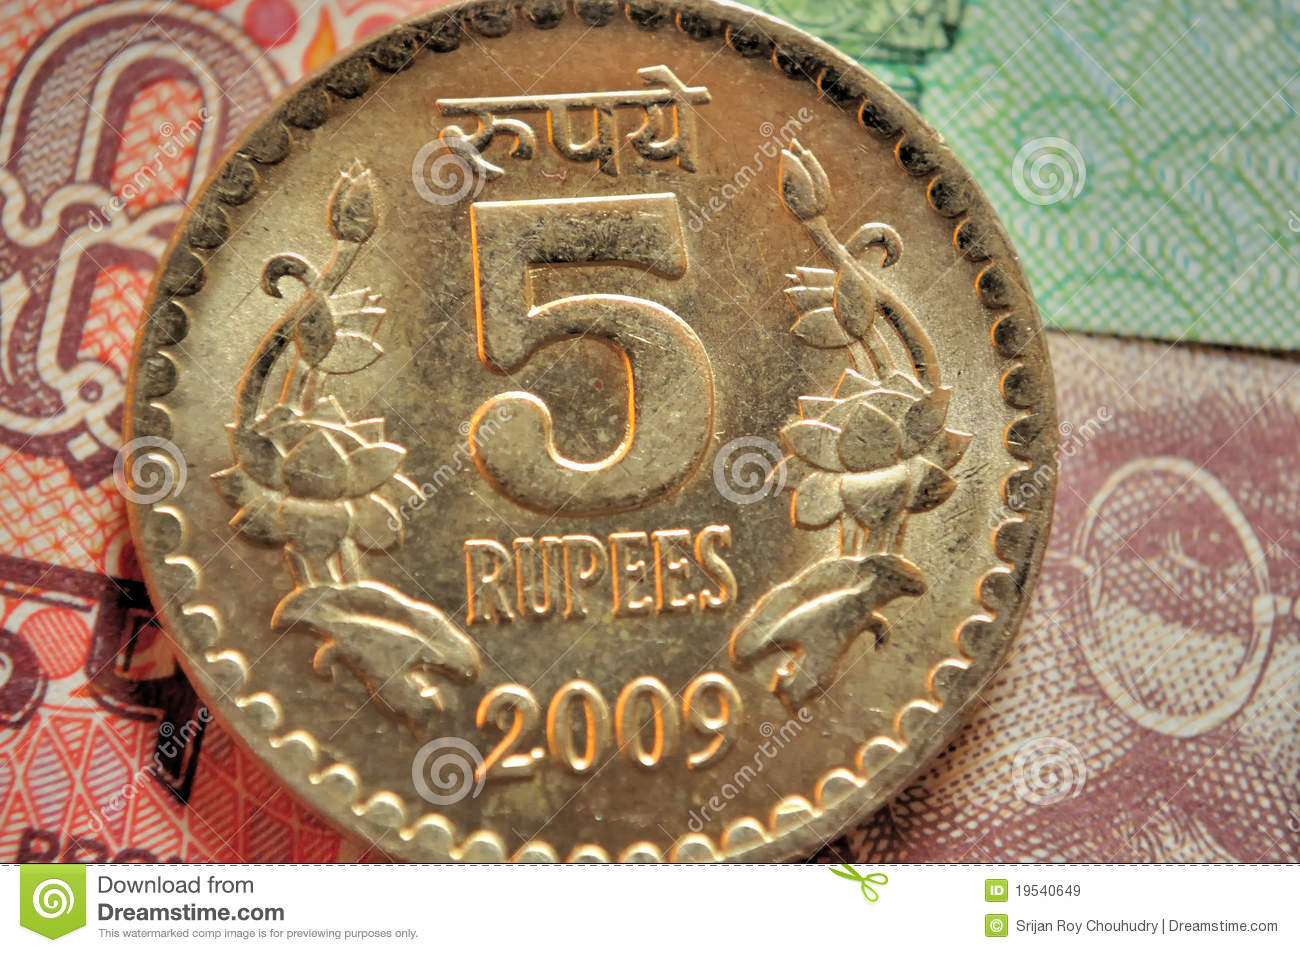 how to change currency in india